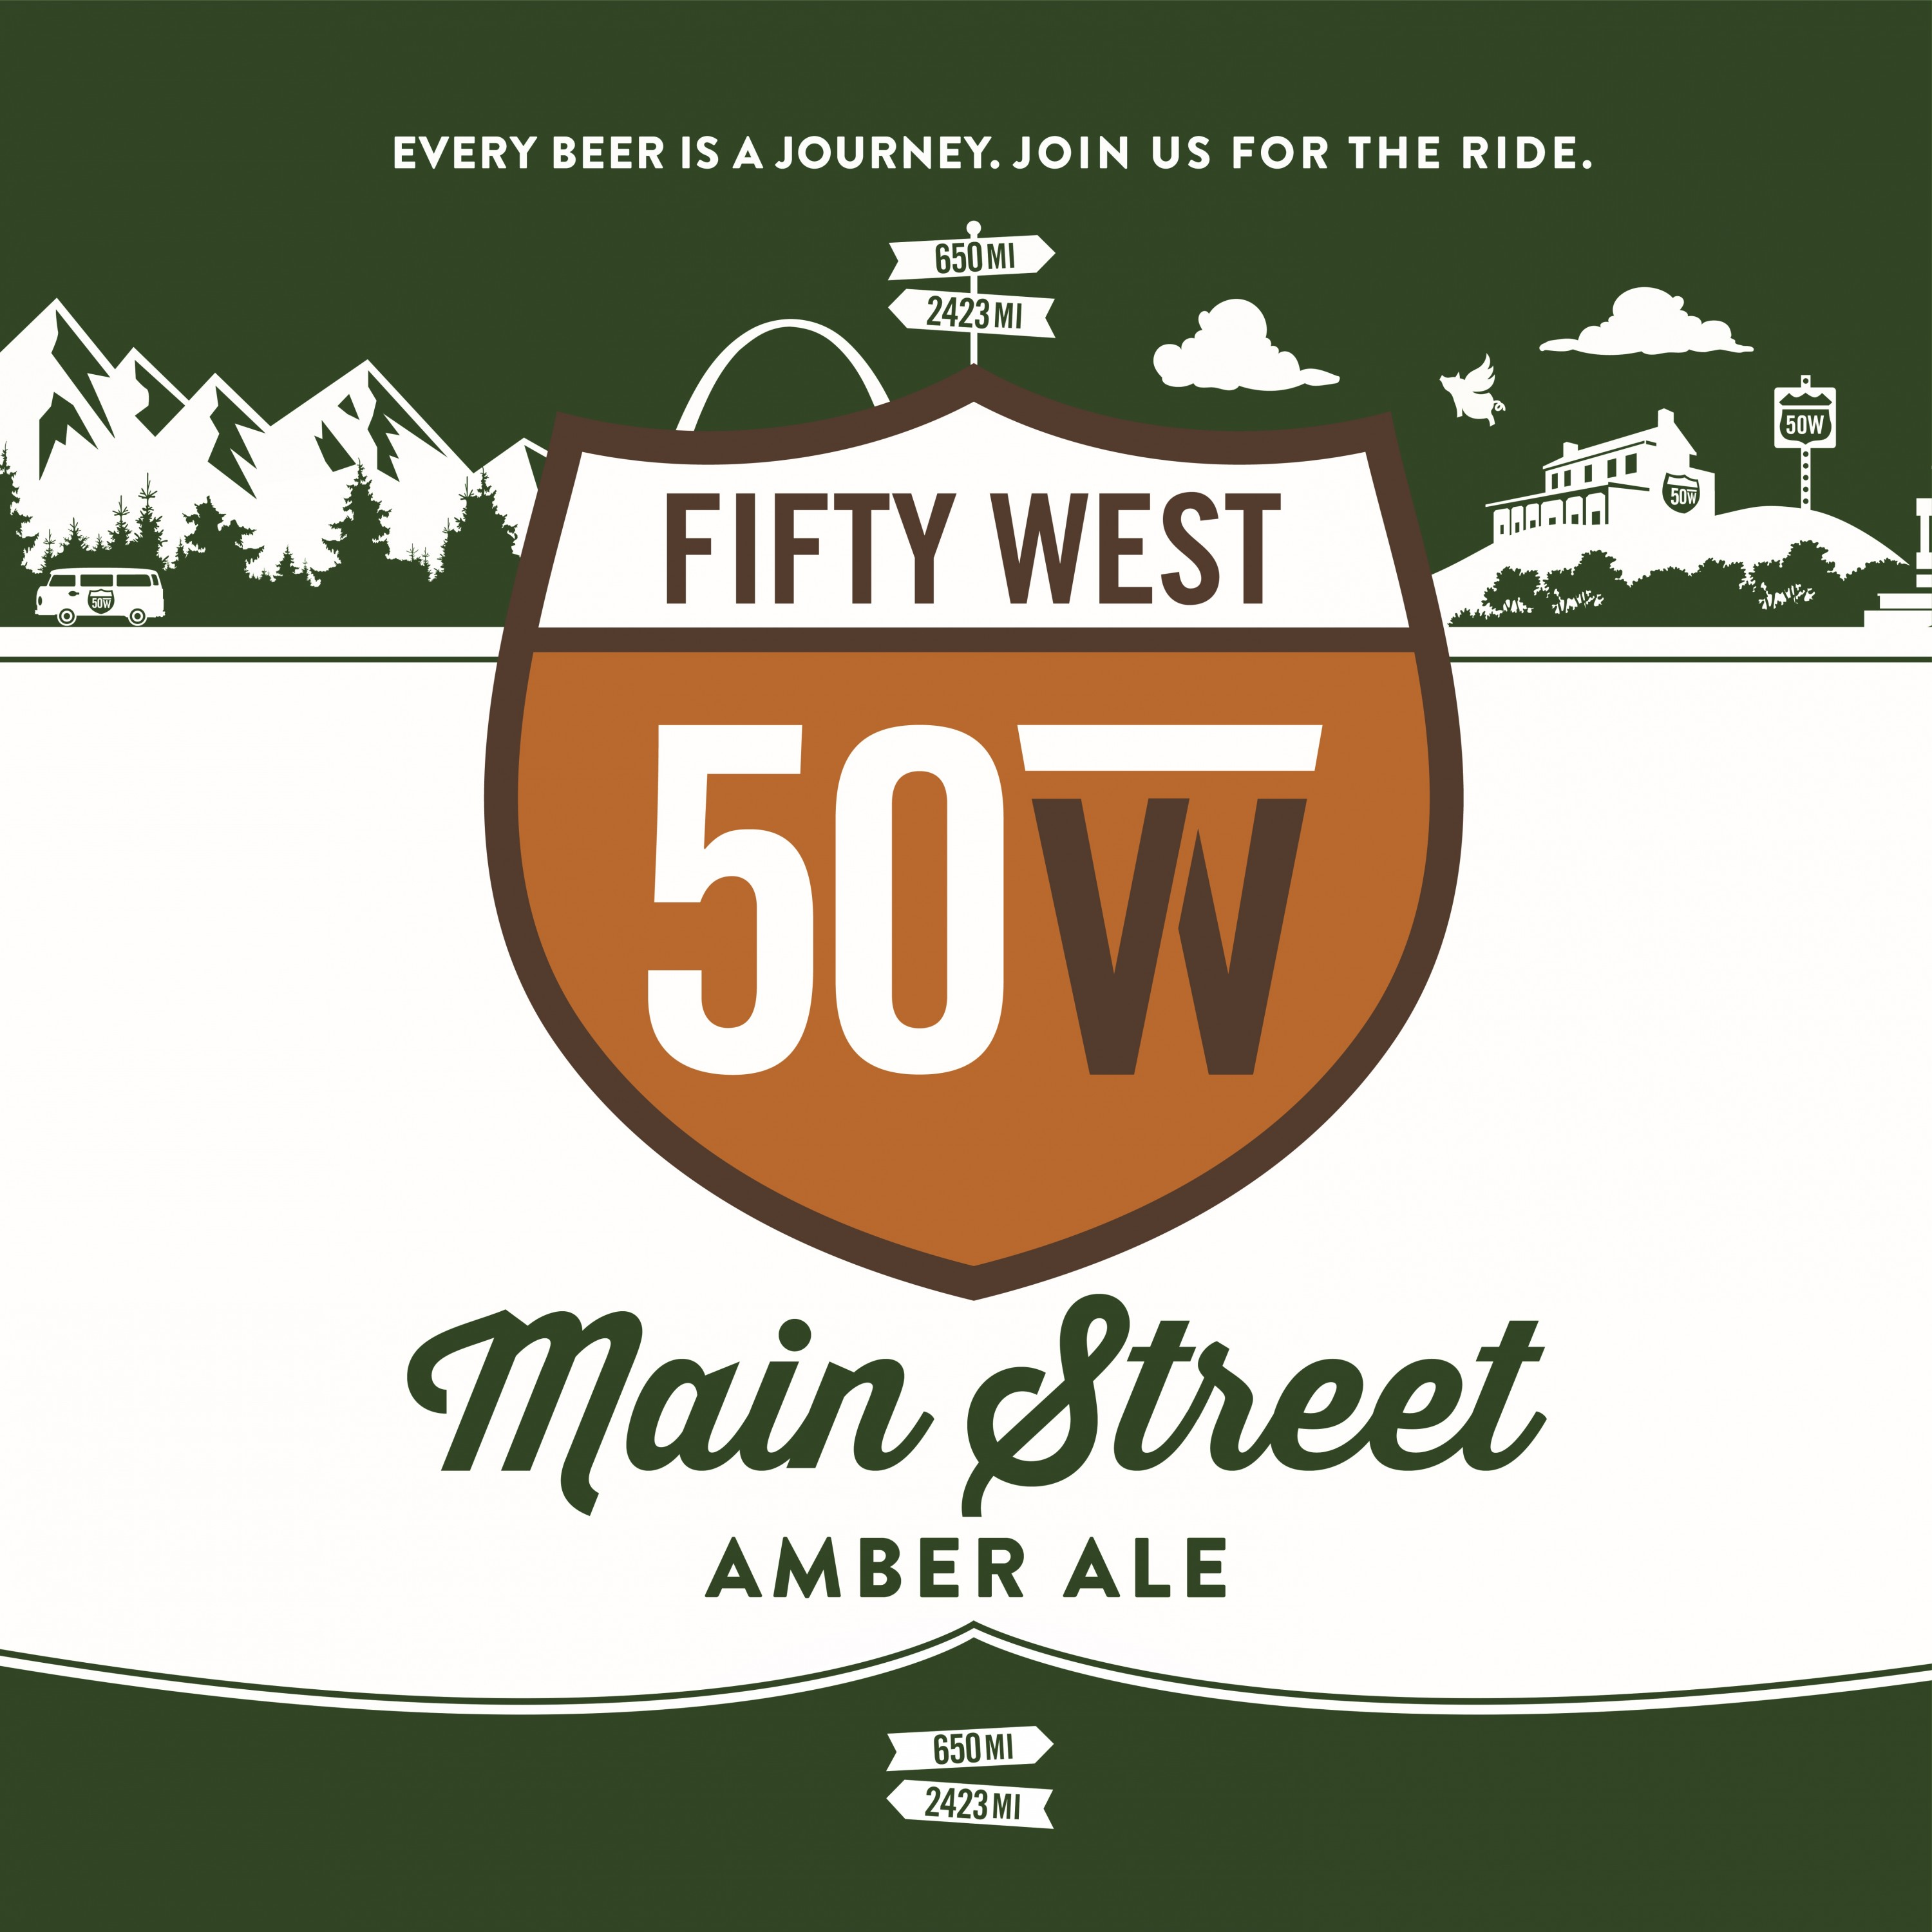 Fifty West Main Street Amber Ale